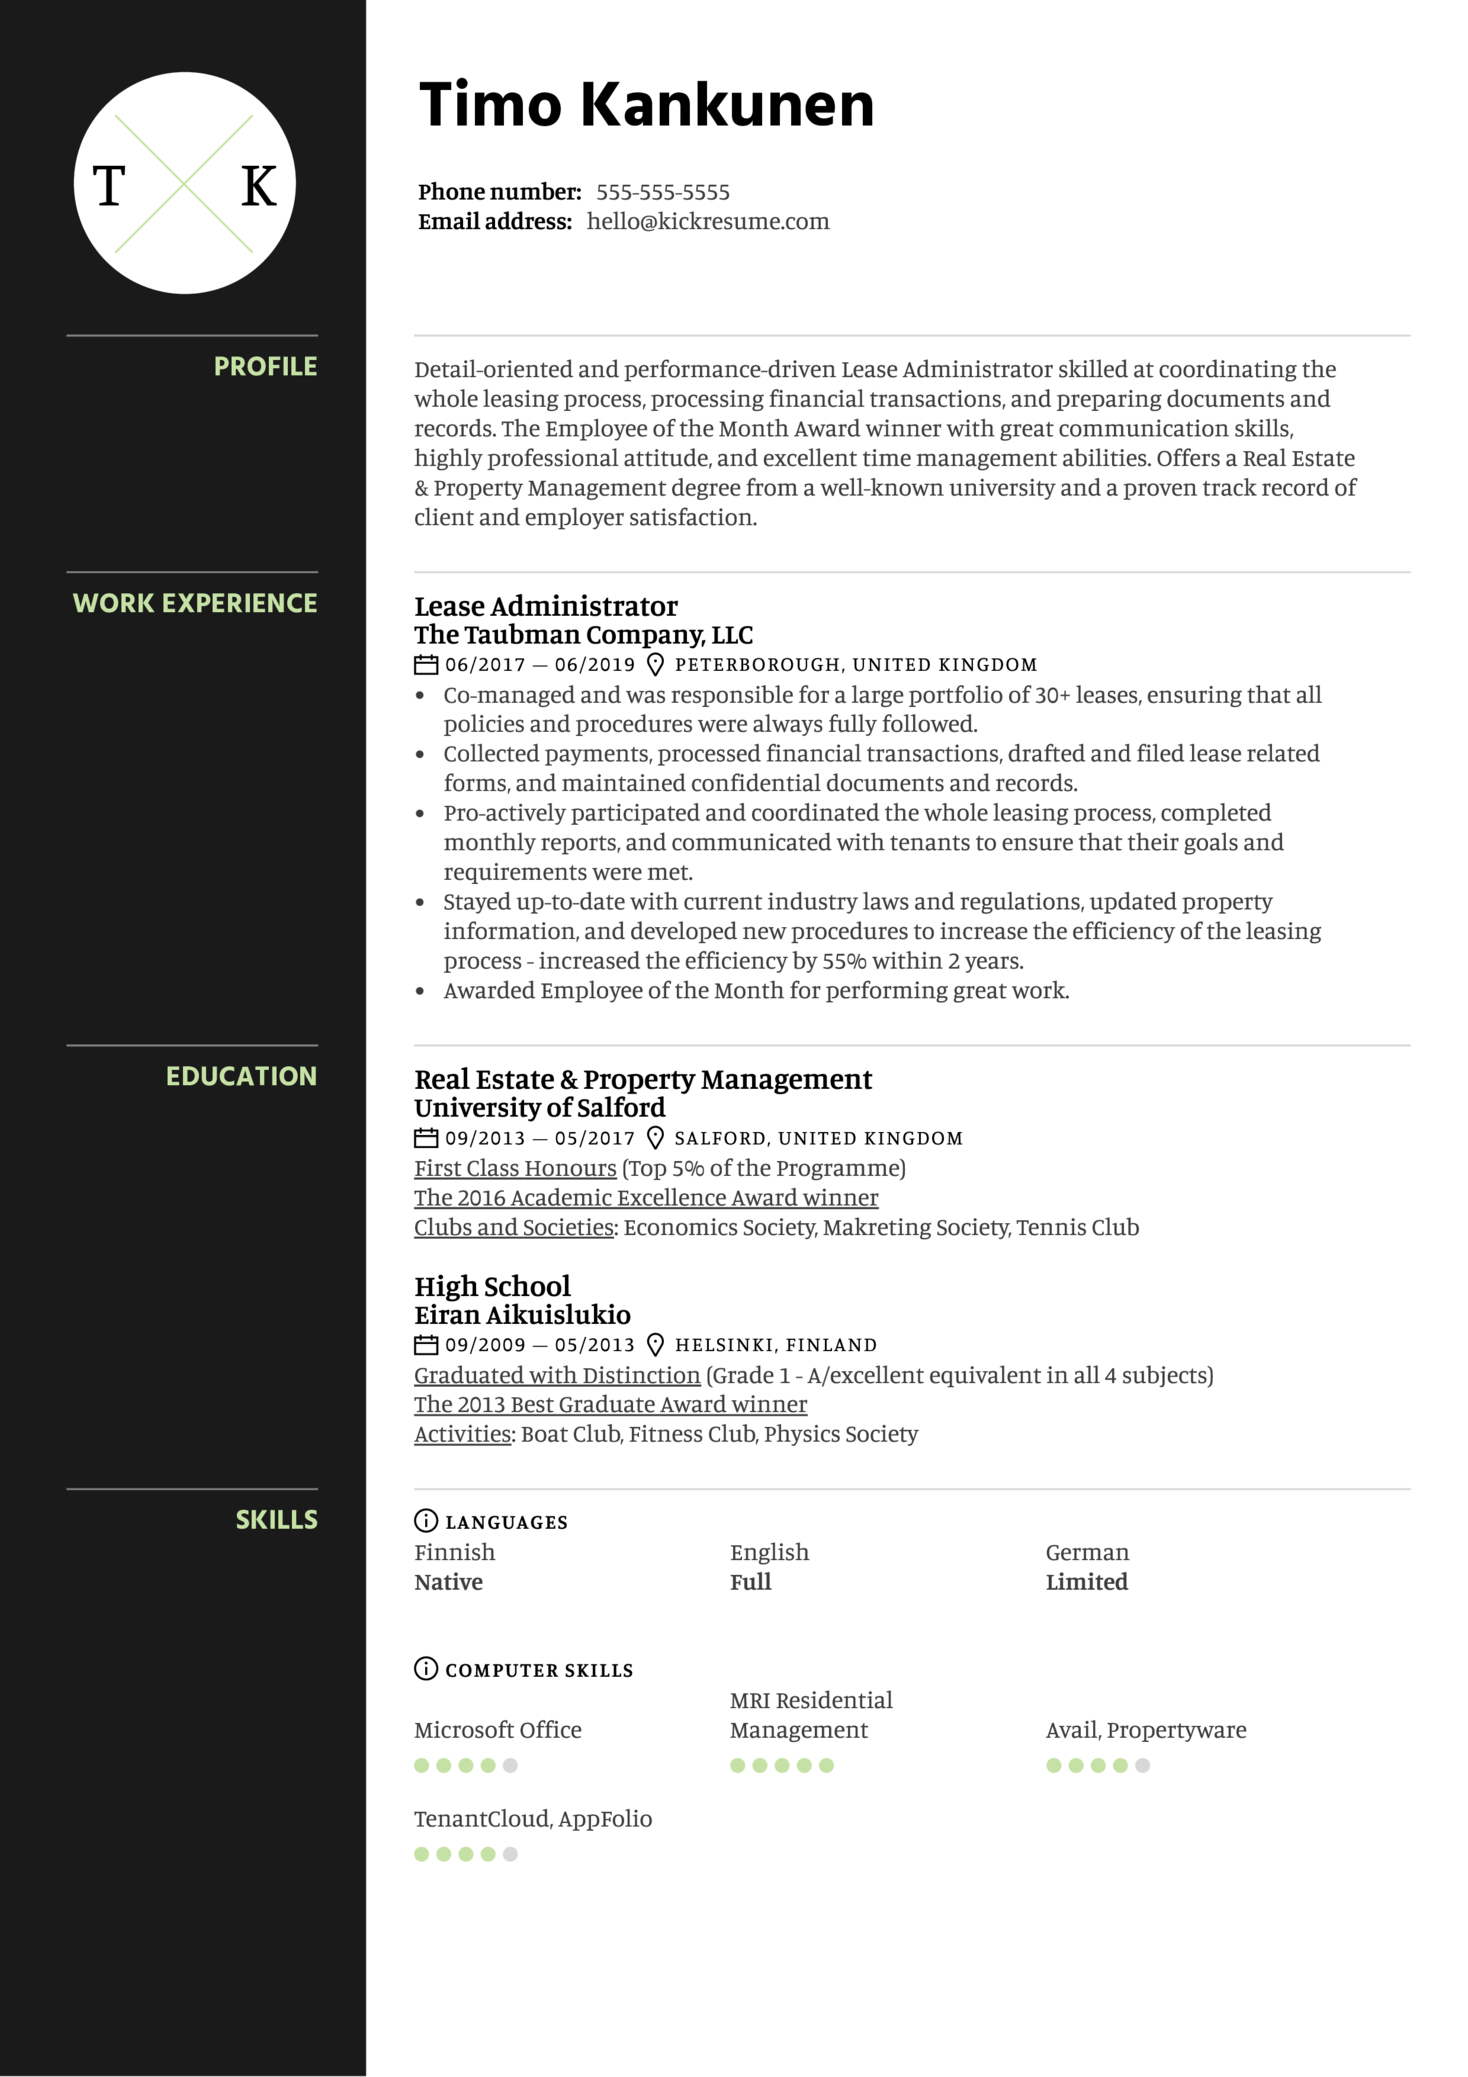 Lease Administrator Resume Example (parte 1)